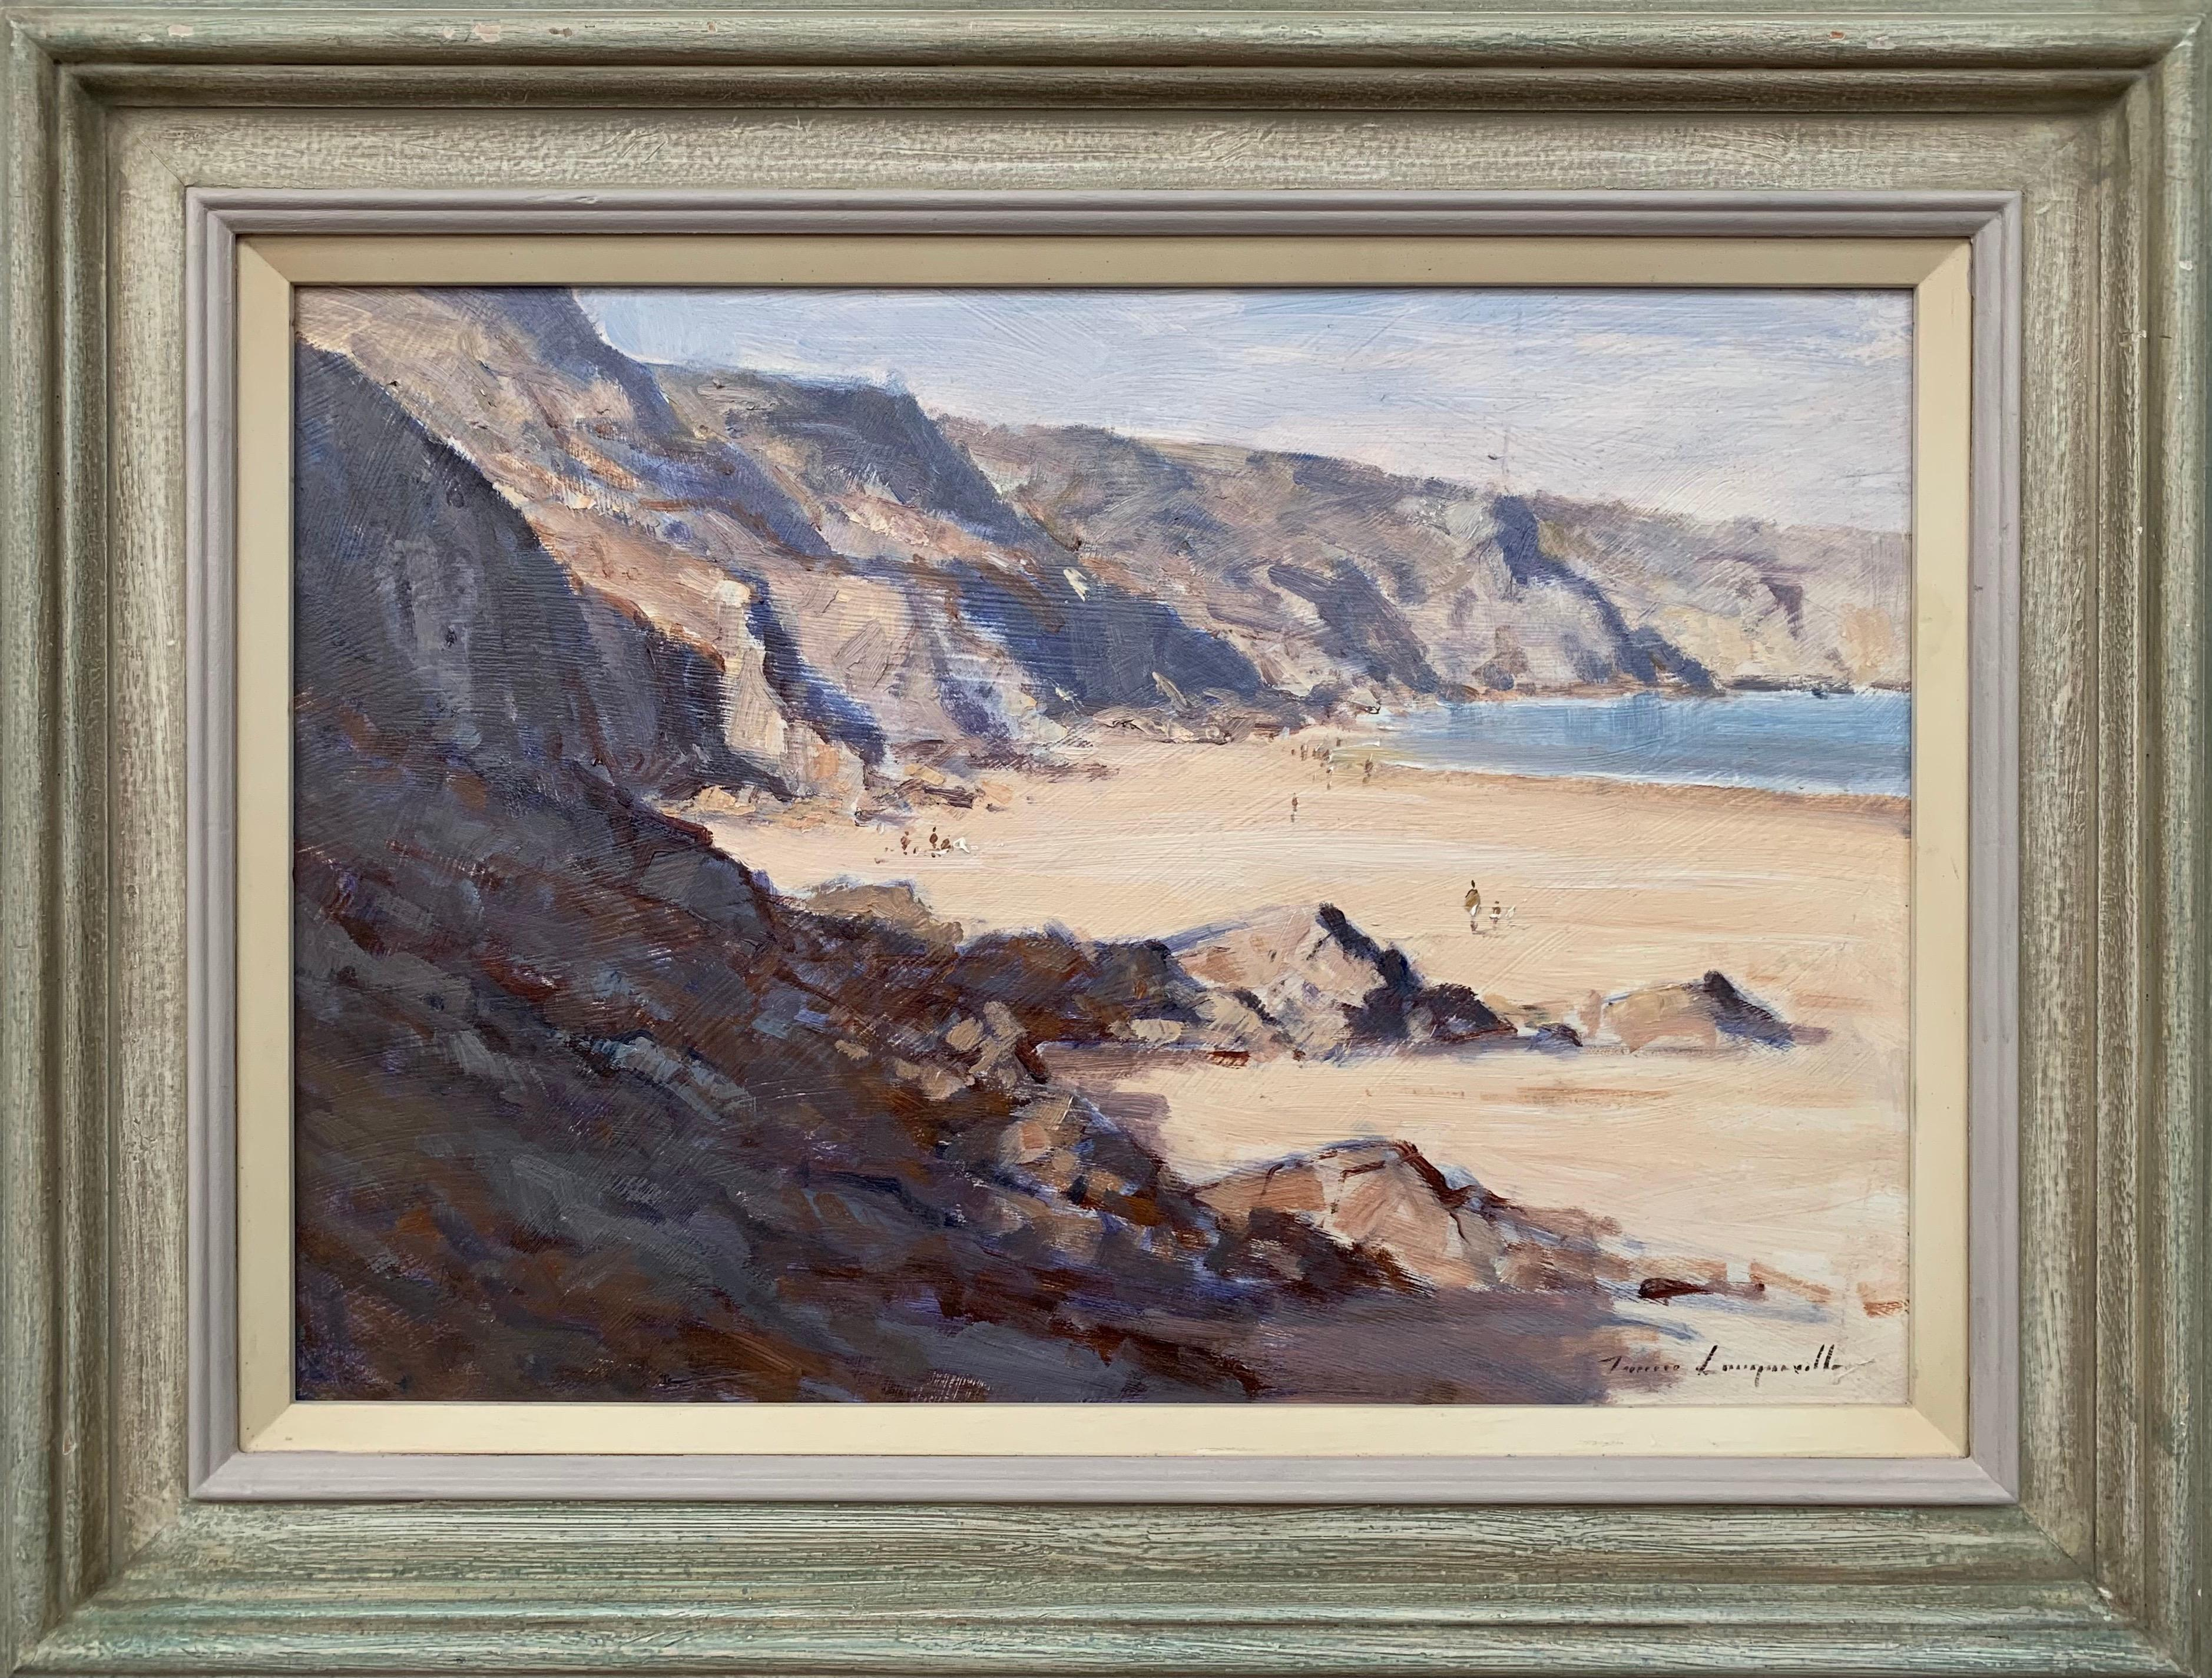 Landscape Seascape Painting of The Little Bay in Jersey by British Artist